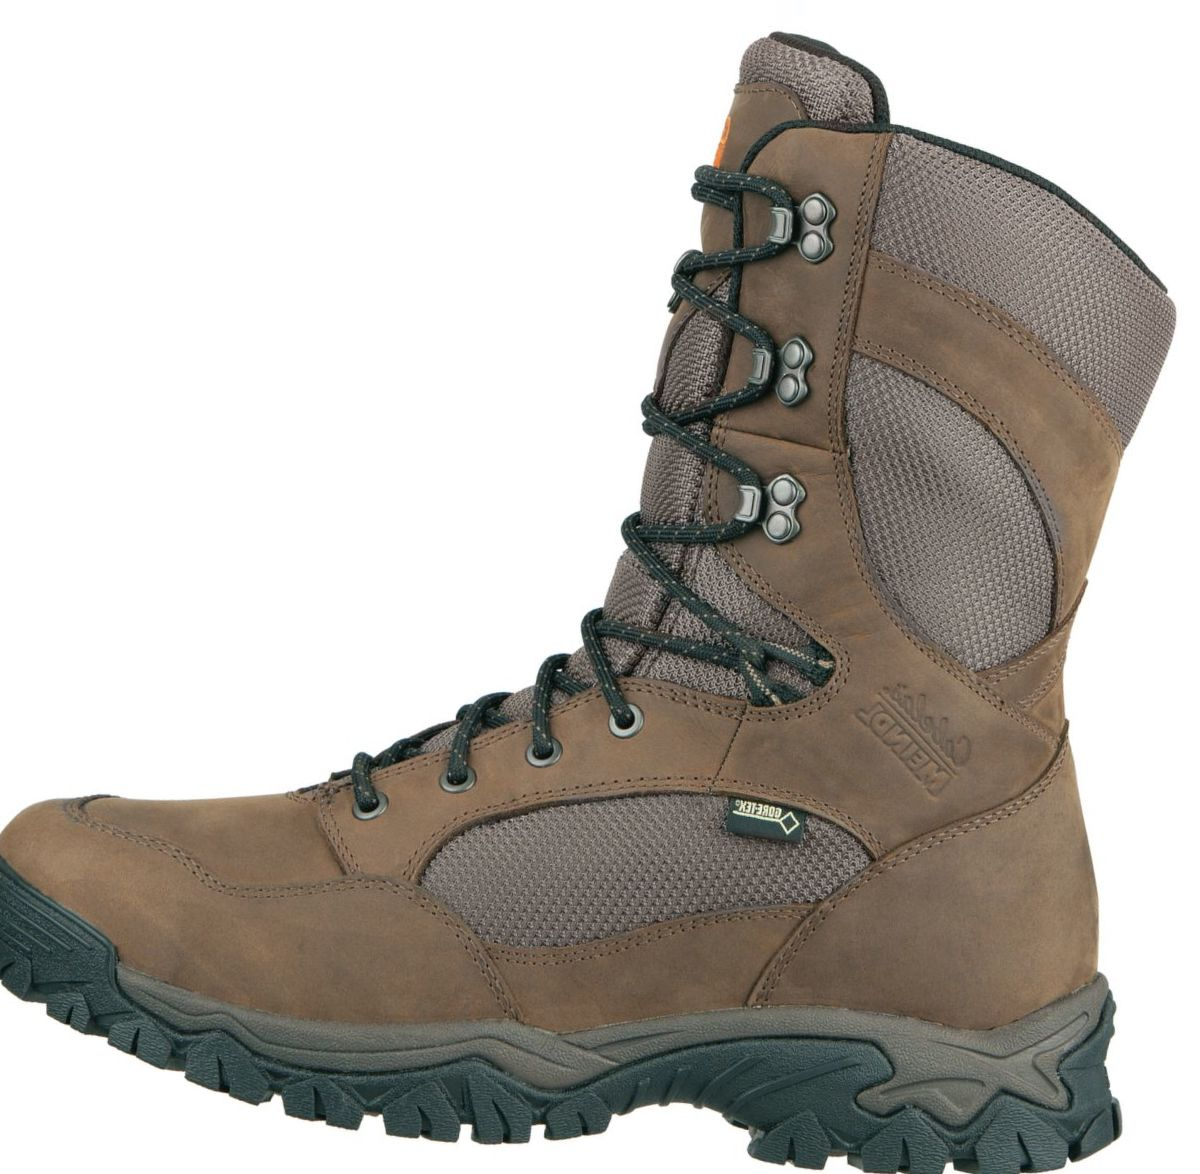 Cabela's | Meindl Men's 400-Gram Ultralight™ Hunting Boots with GORE-TEX® and Thinsulate™